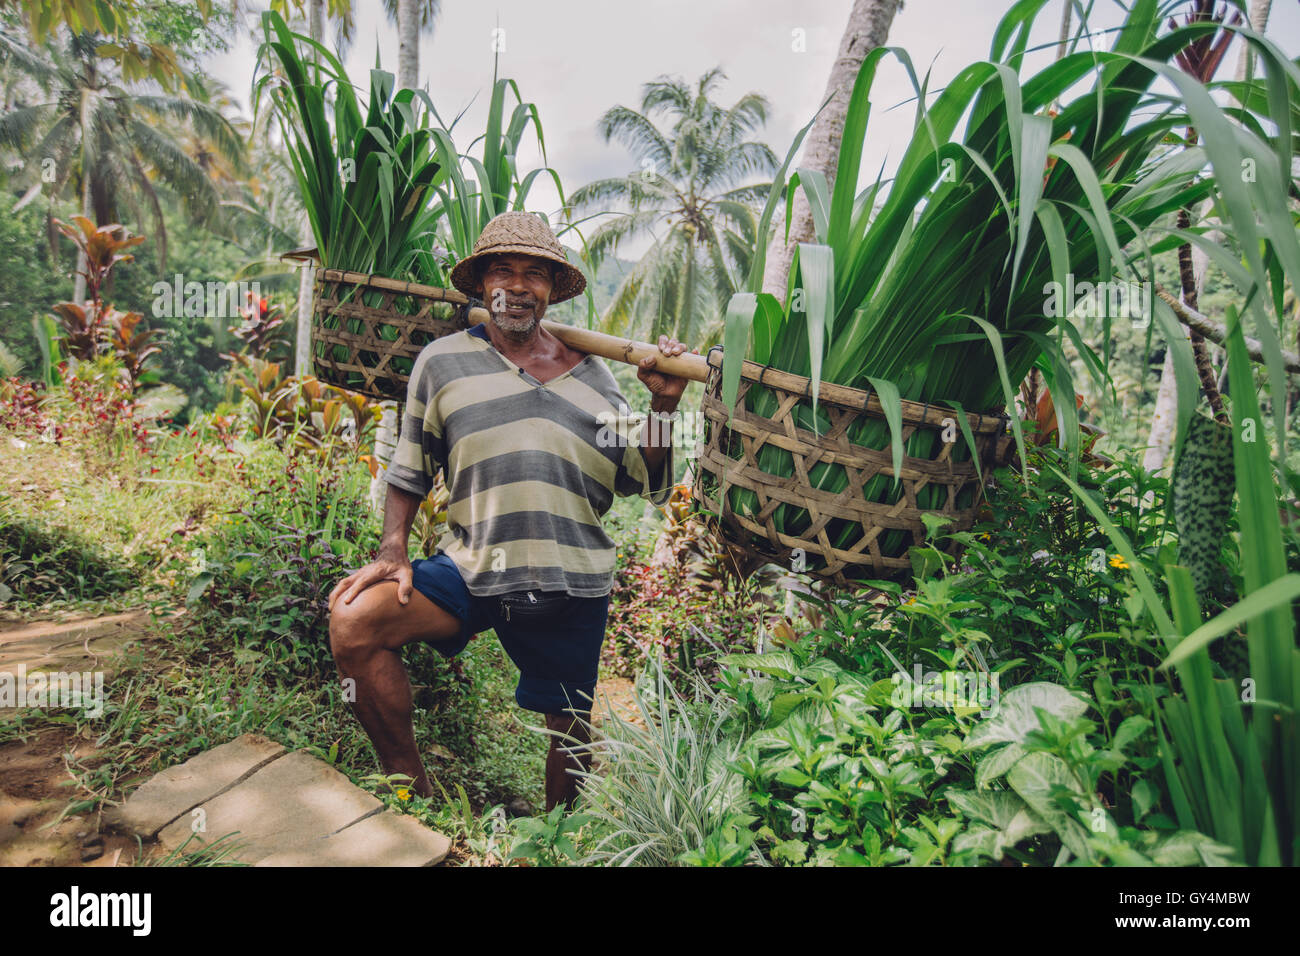 Shot of old man with seedlings on his shoulders. Senior farmer smiling working in his farm. - Stock Image